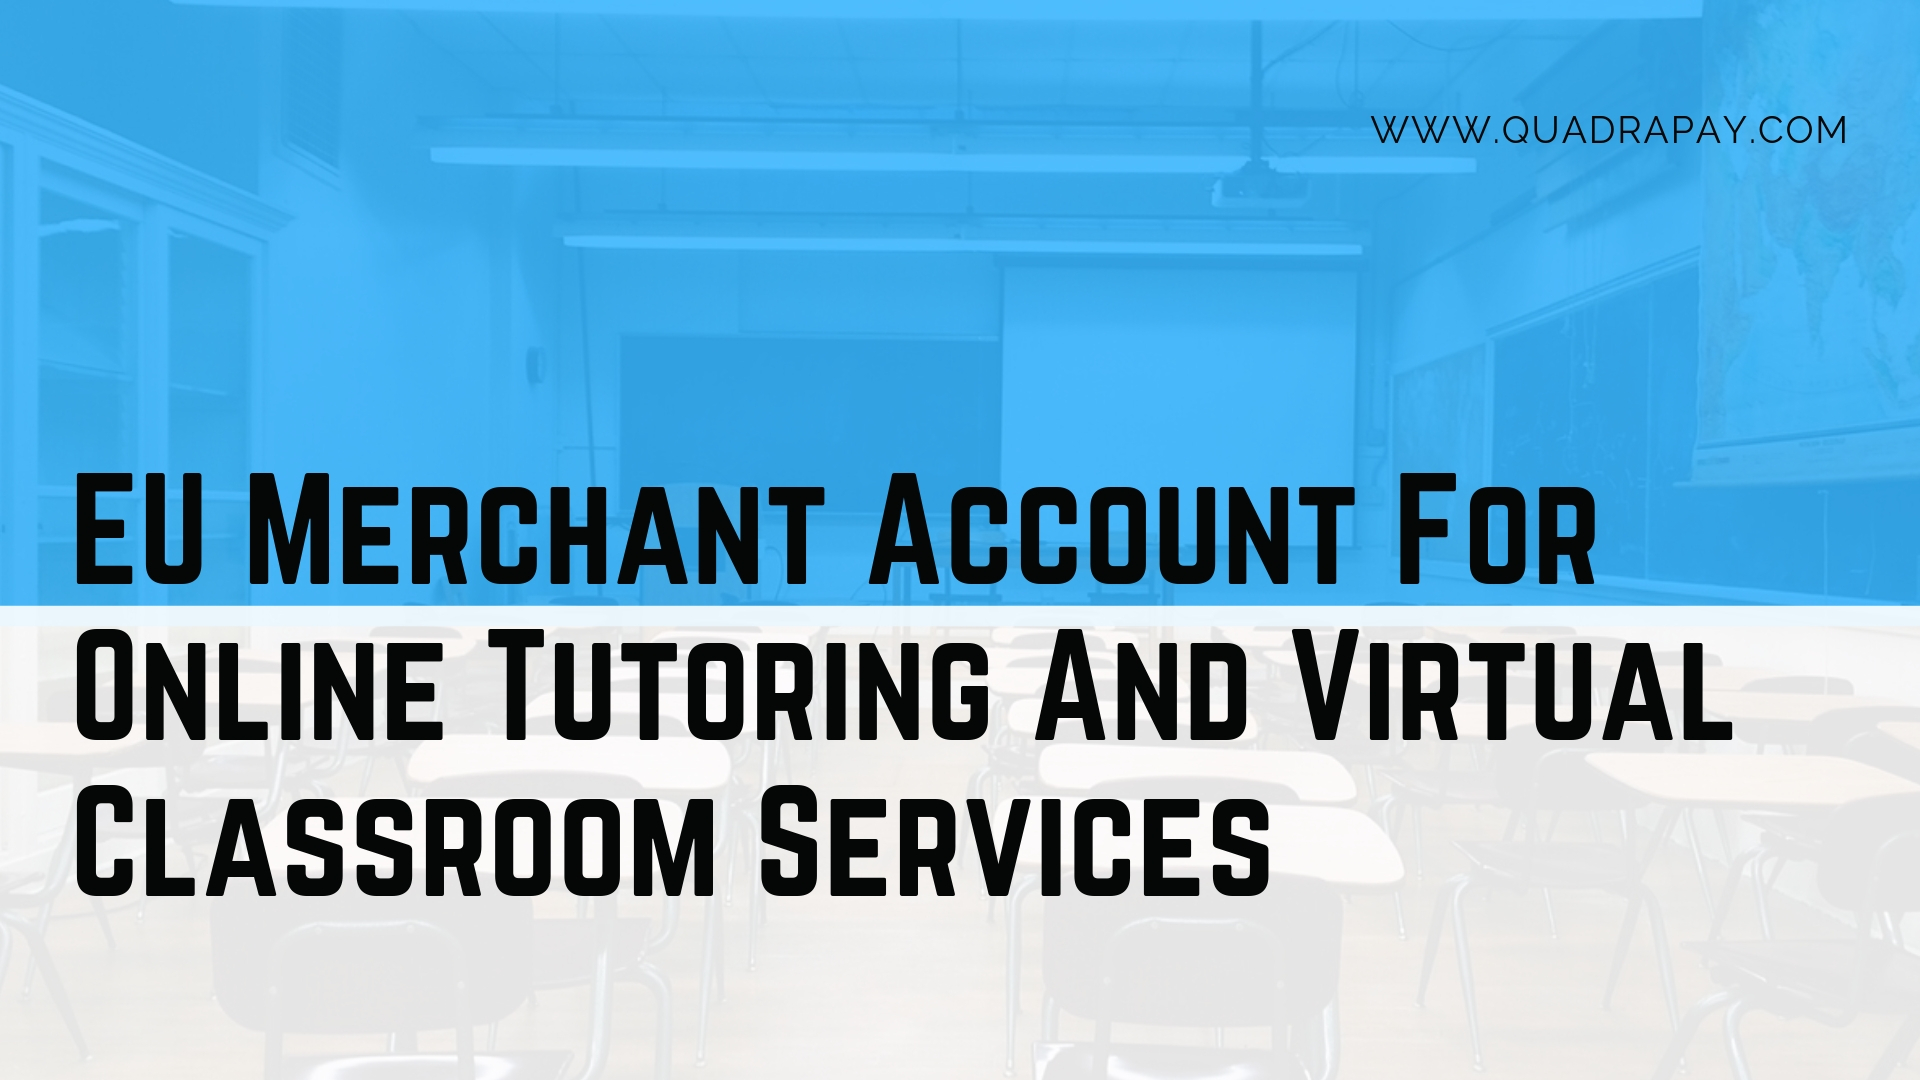 Merchant Account Online Tutoring And Virtual Classroom Services